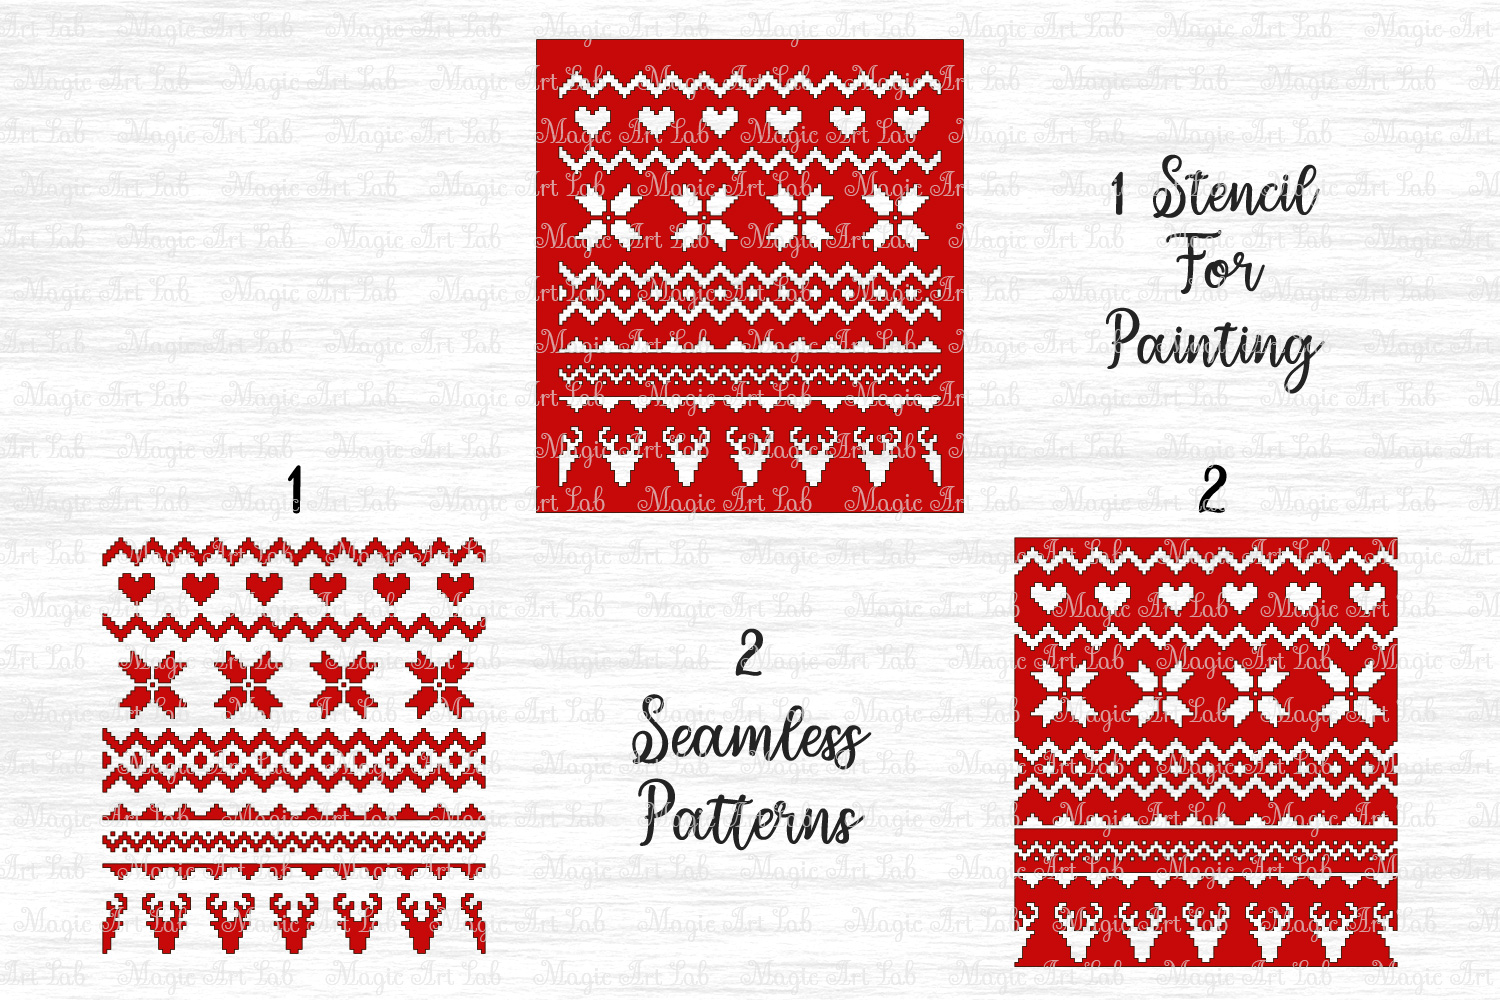 Sweater pattern svg, Christmas pattern svg, Ugly sweater svg example image 2